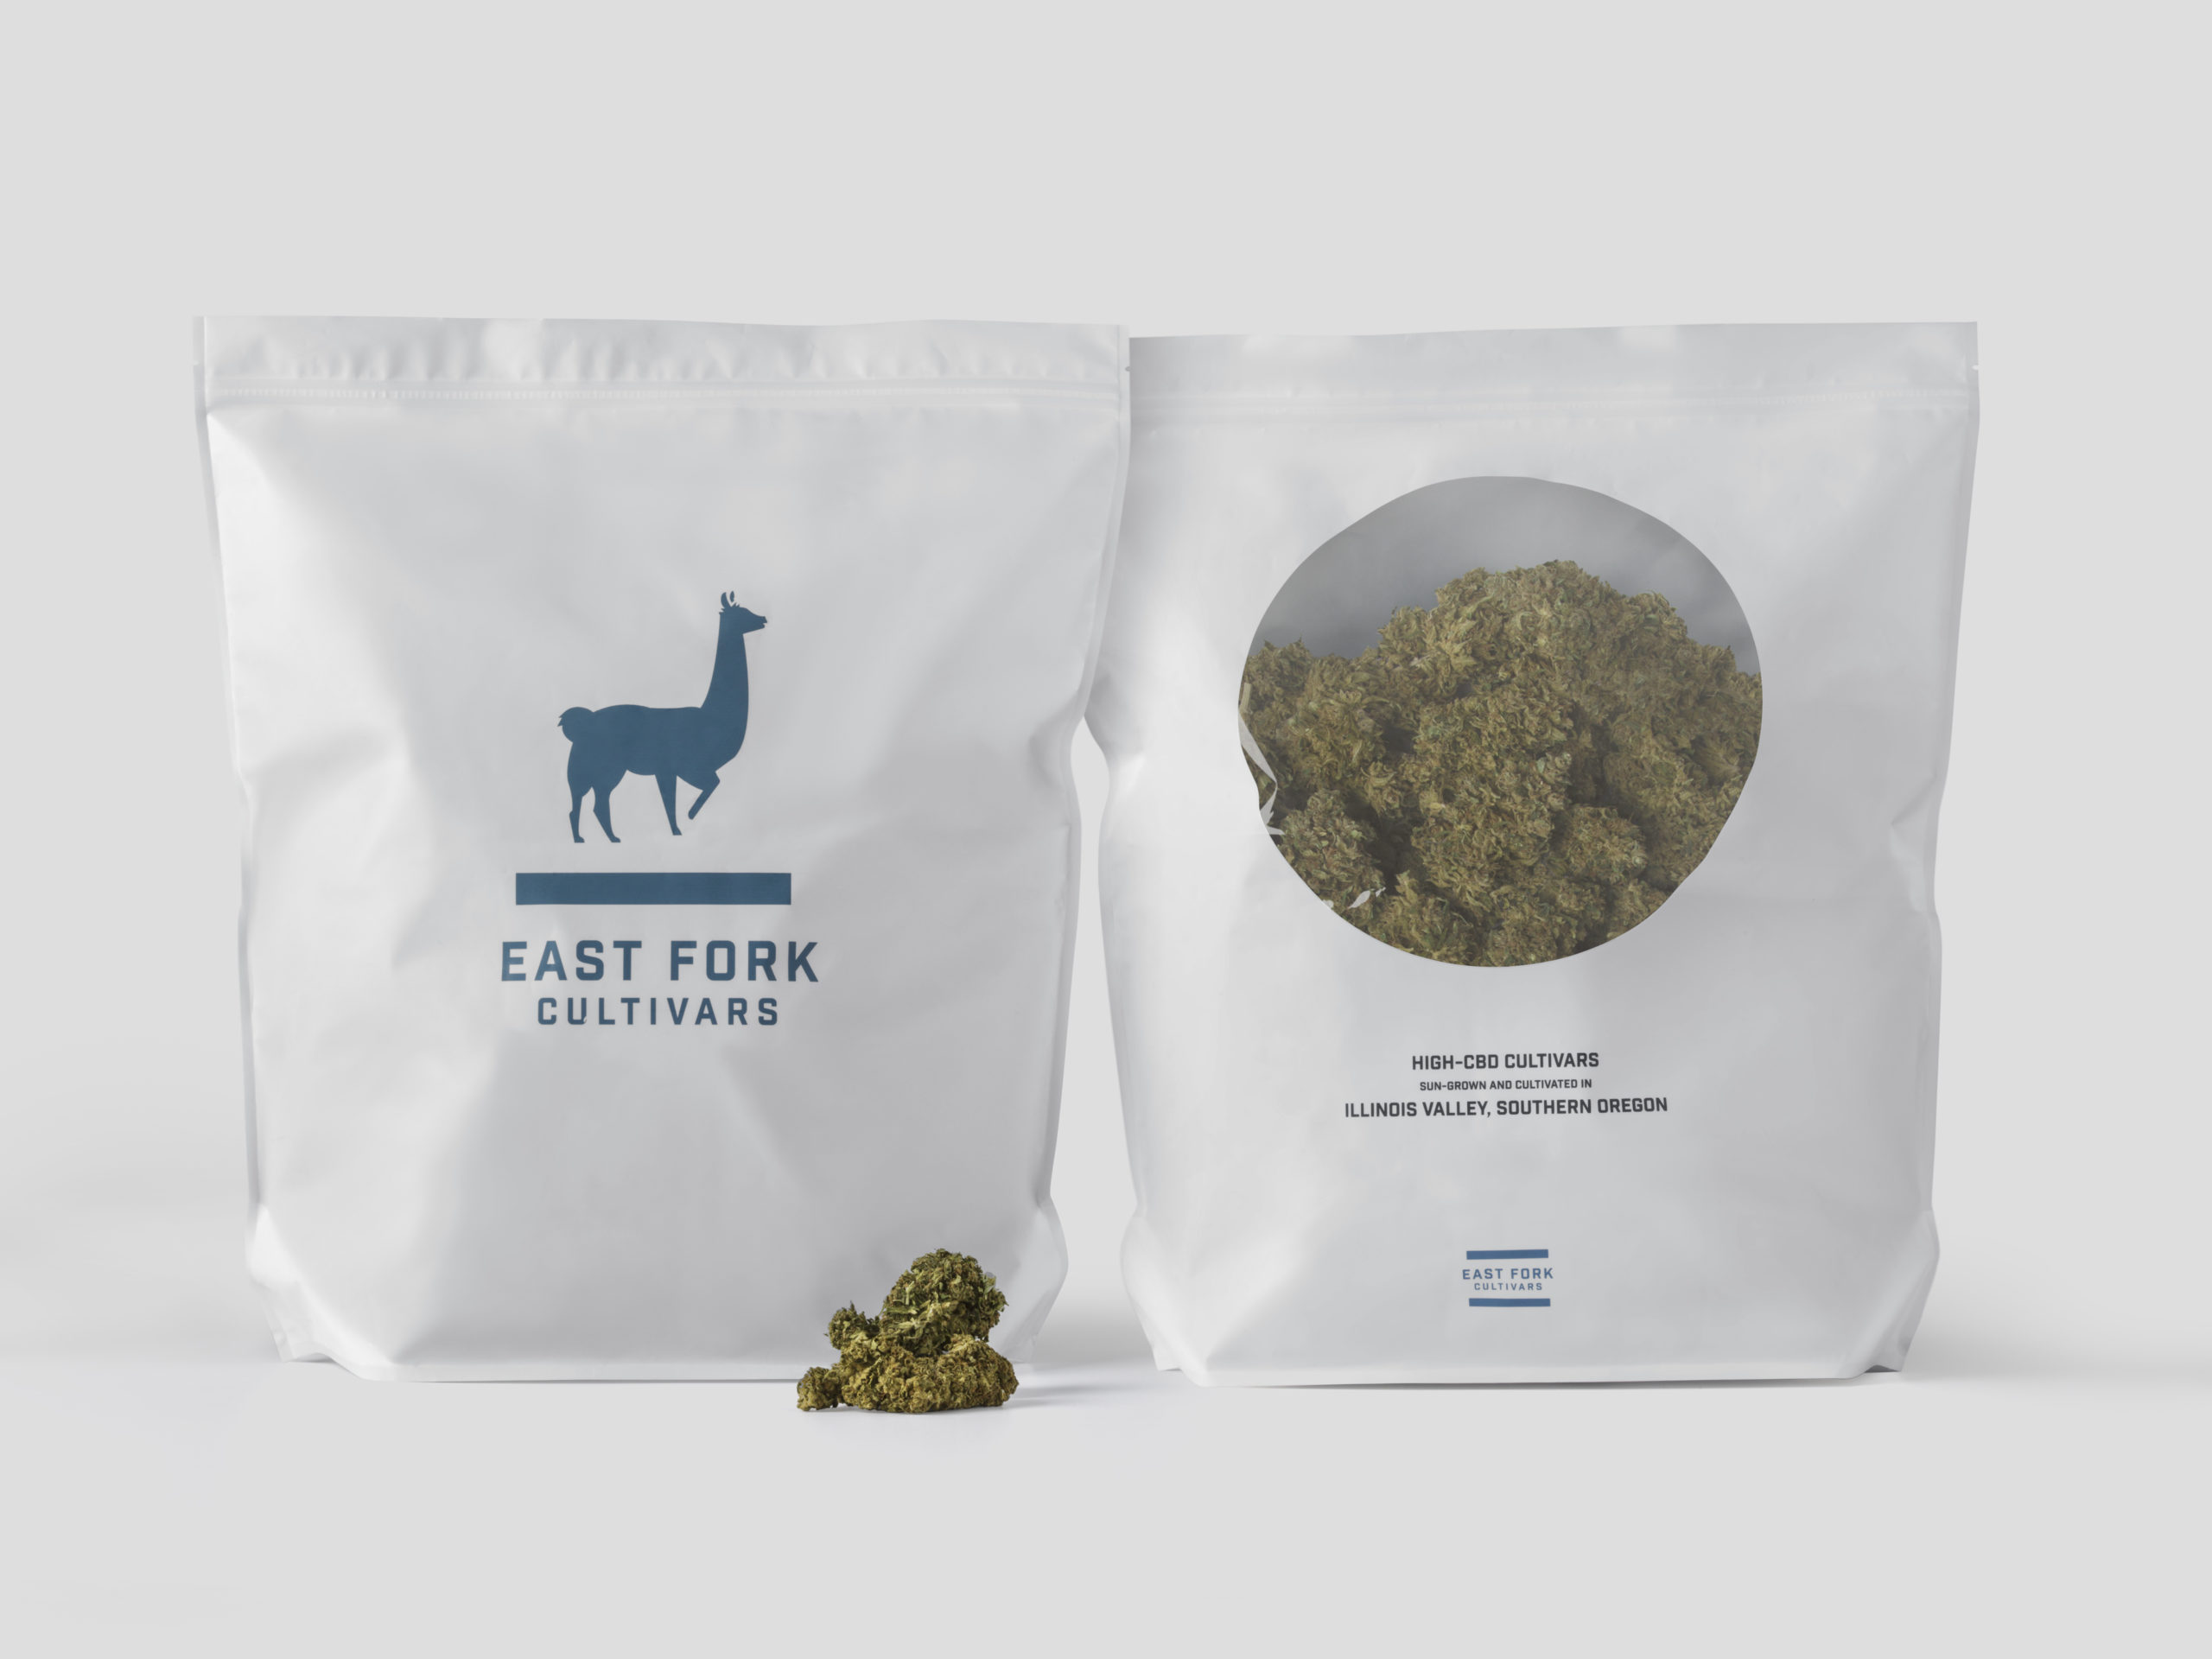 Two white bags of East Fork Cultivars High-CBD flowers, side by side, showing front and back. The left bag shows the blue East Fork Cultivars llama logo, the right a circle cutout window displaying the flower product inside the bag.